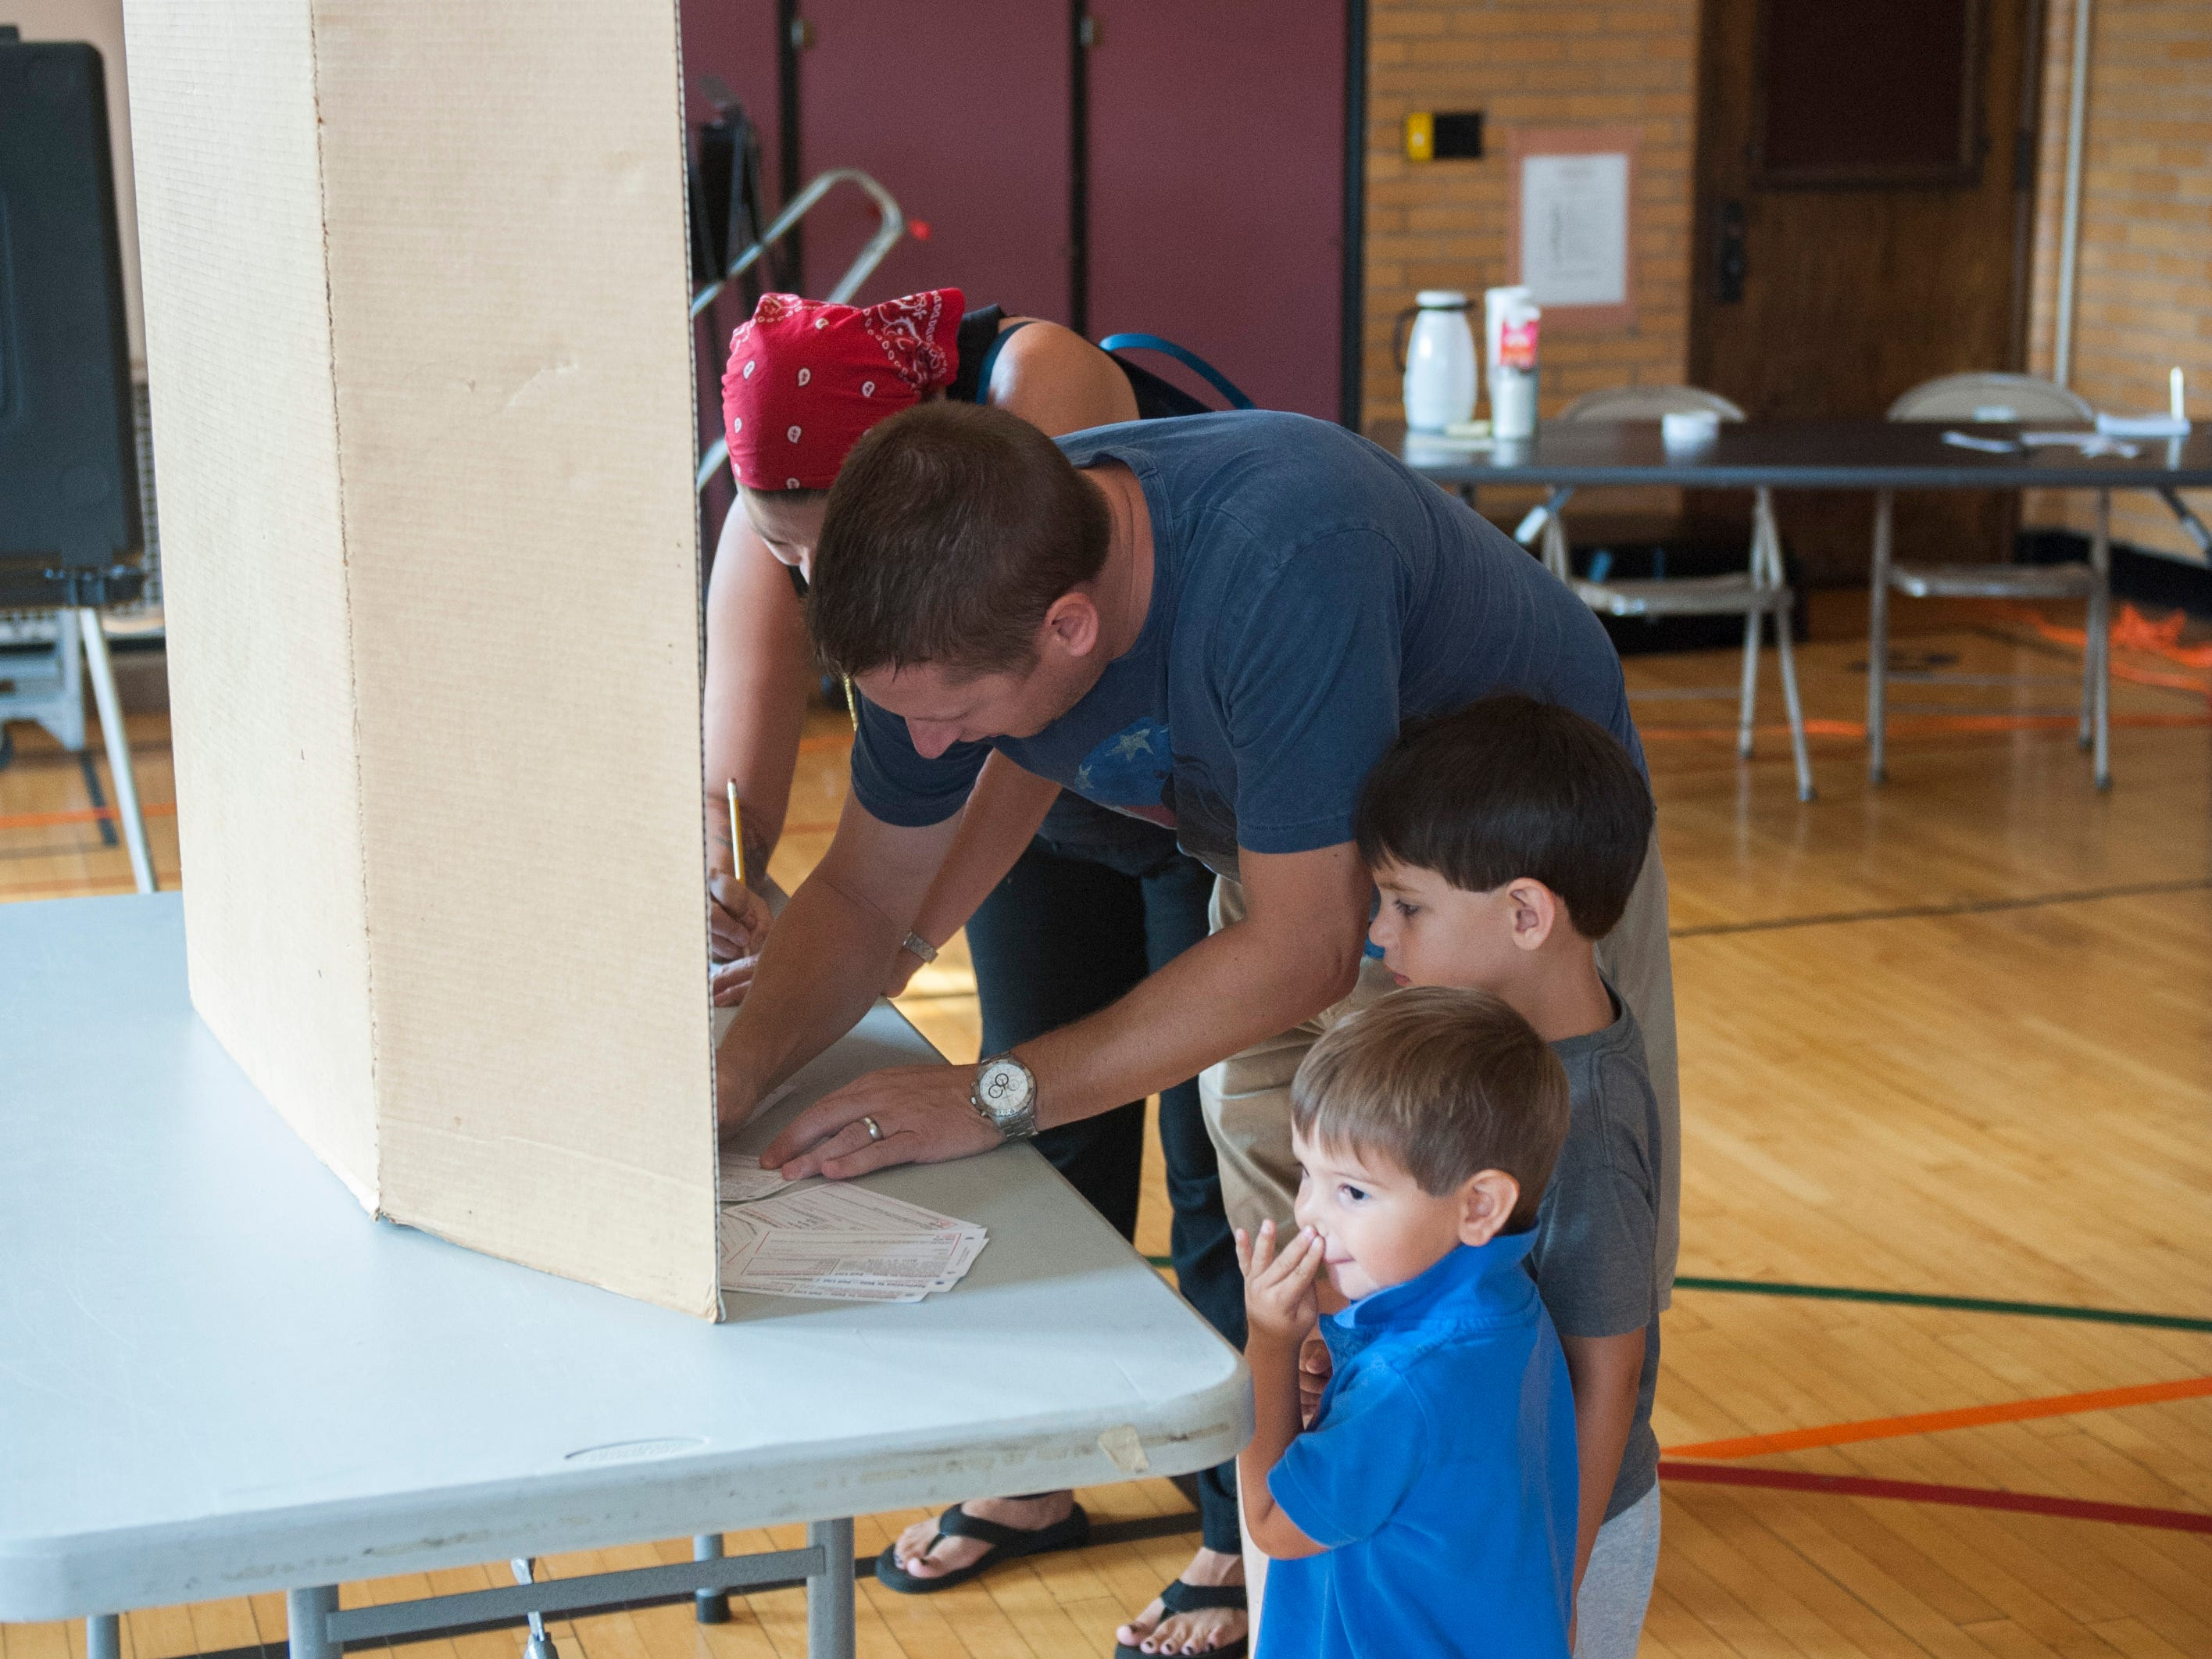 Chris D'Angelo and Elisa Gurule, Grosse Pointe Park, and their sons Francisco, 2, and Felix, 4, check in and fill out voting cards before  getting their primary election ballots at Trombly School in Grosse Pointe Park on Michigan's primary election day,  Tuesday, August 7, 2018. (John T. Greilick, The Detroit News)